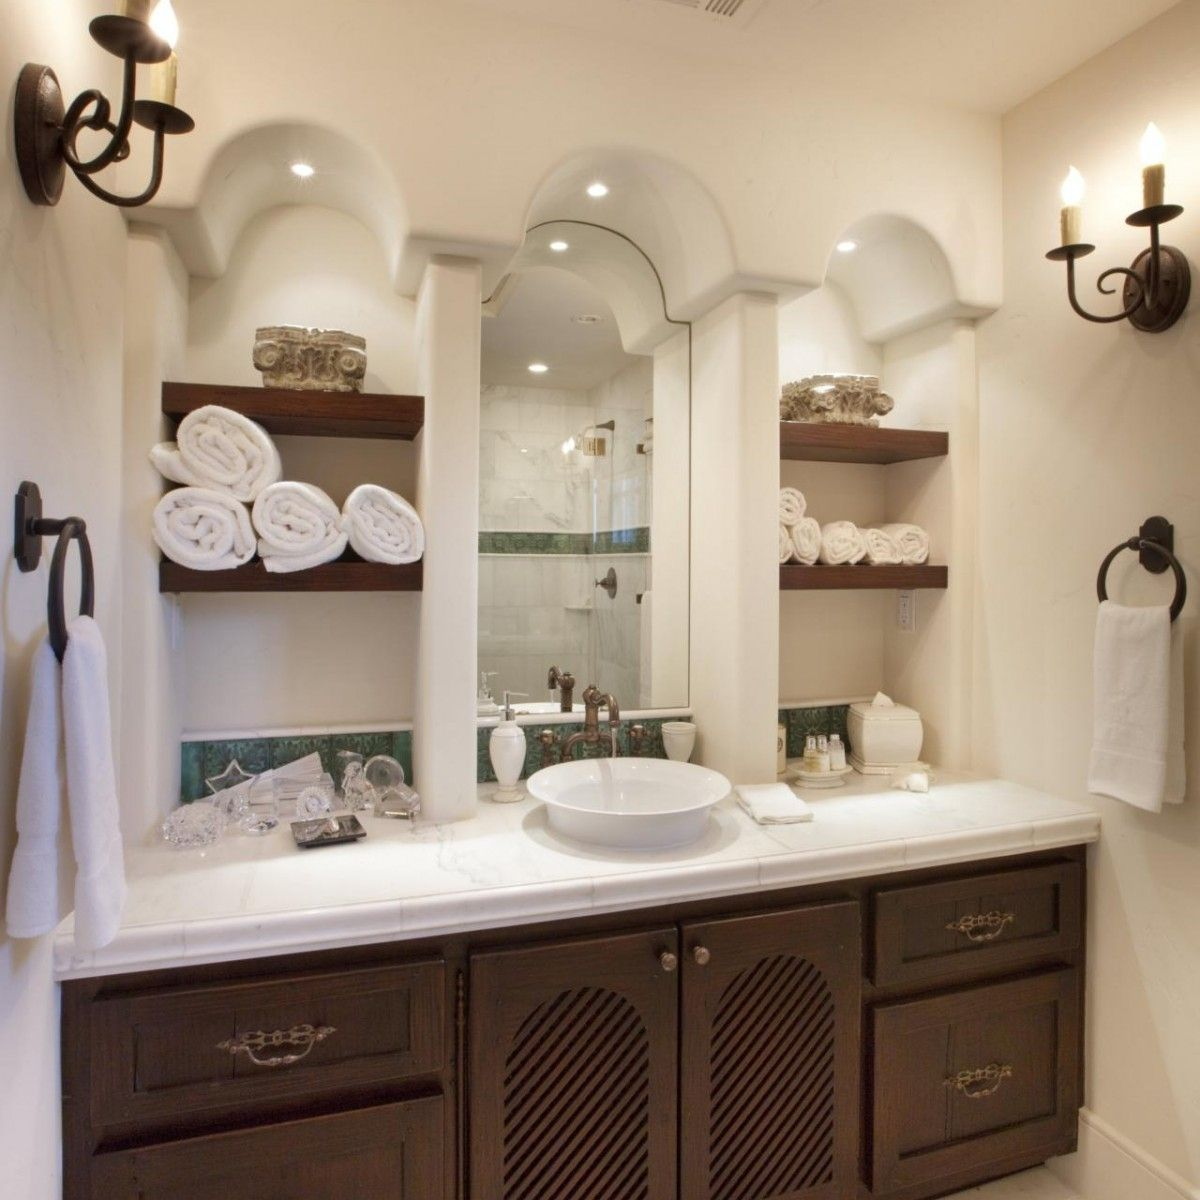 Delicieux Bathroom Towel Rack Ideas Small Racks About Pinterest